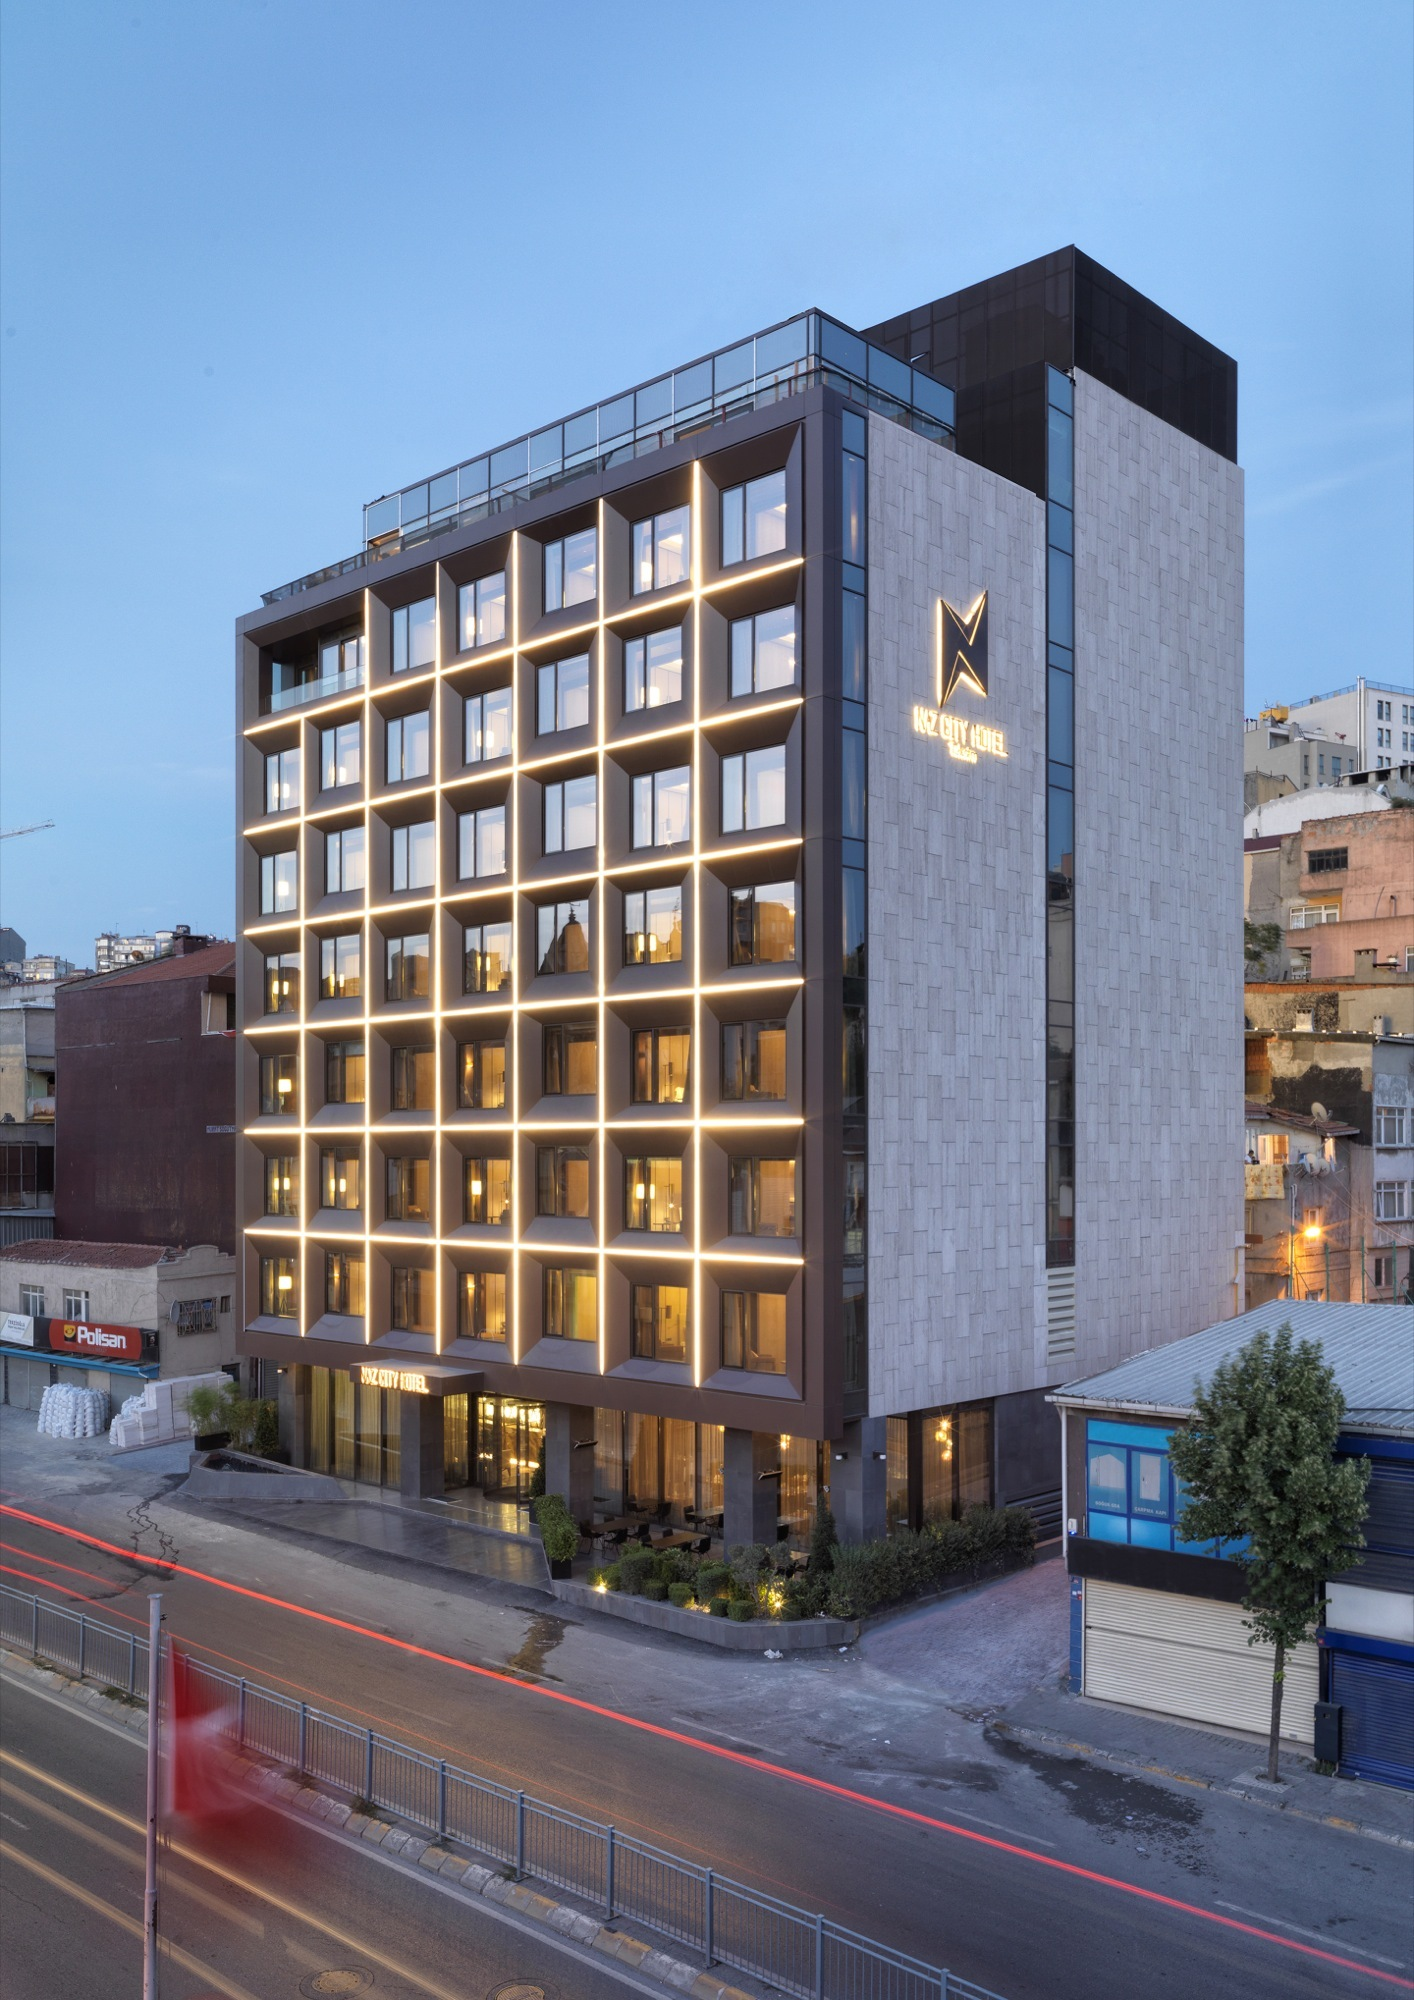 Naz city hotel taksim metex design group archdaily for Design hotel slowenien